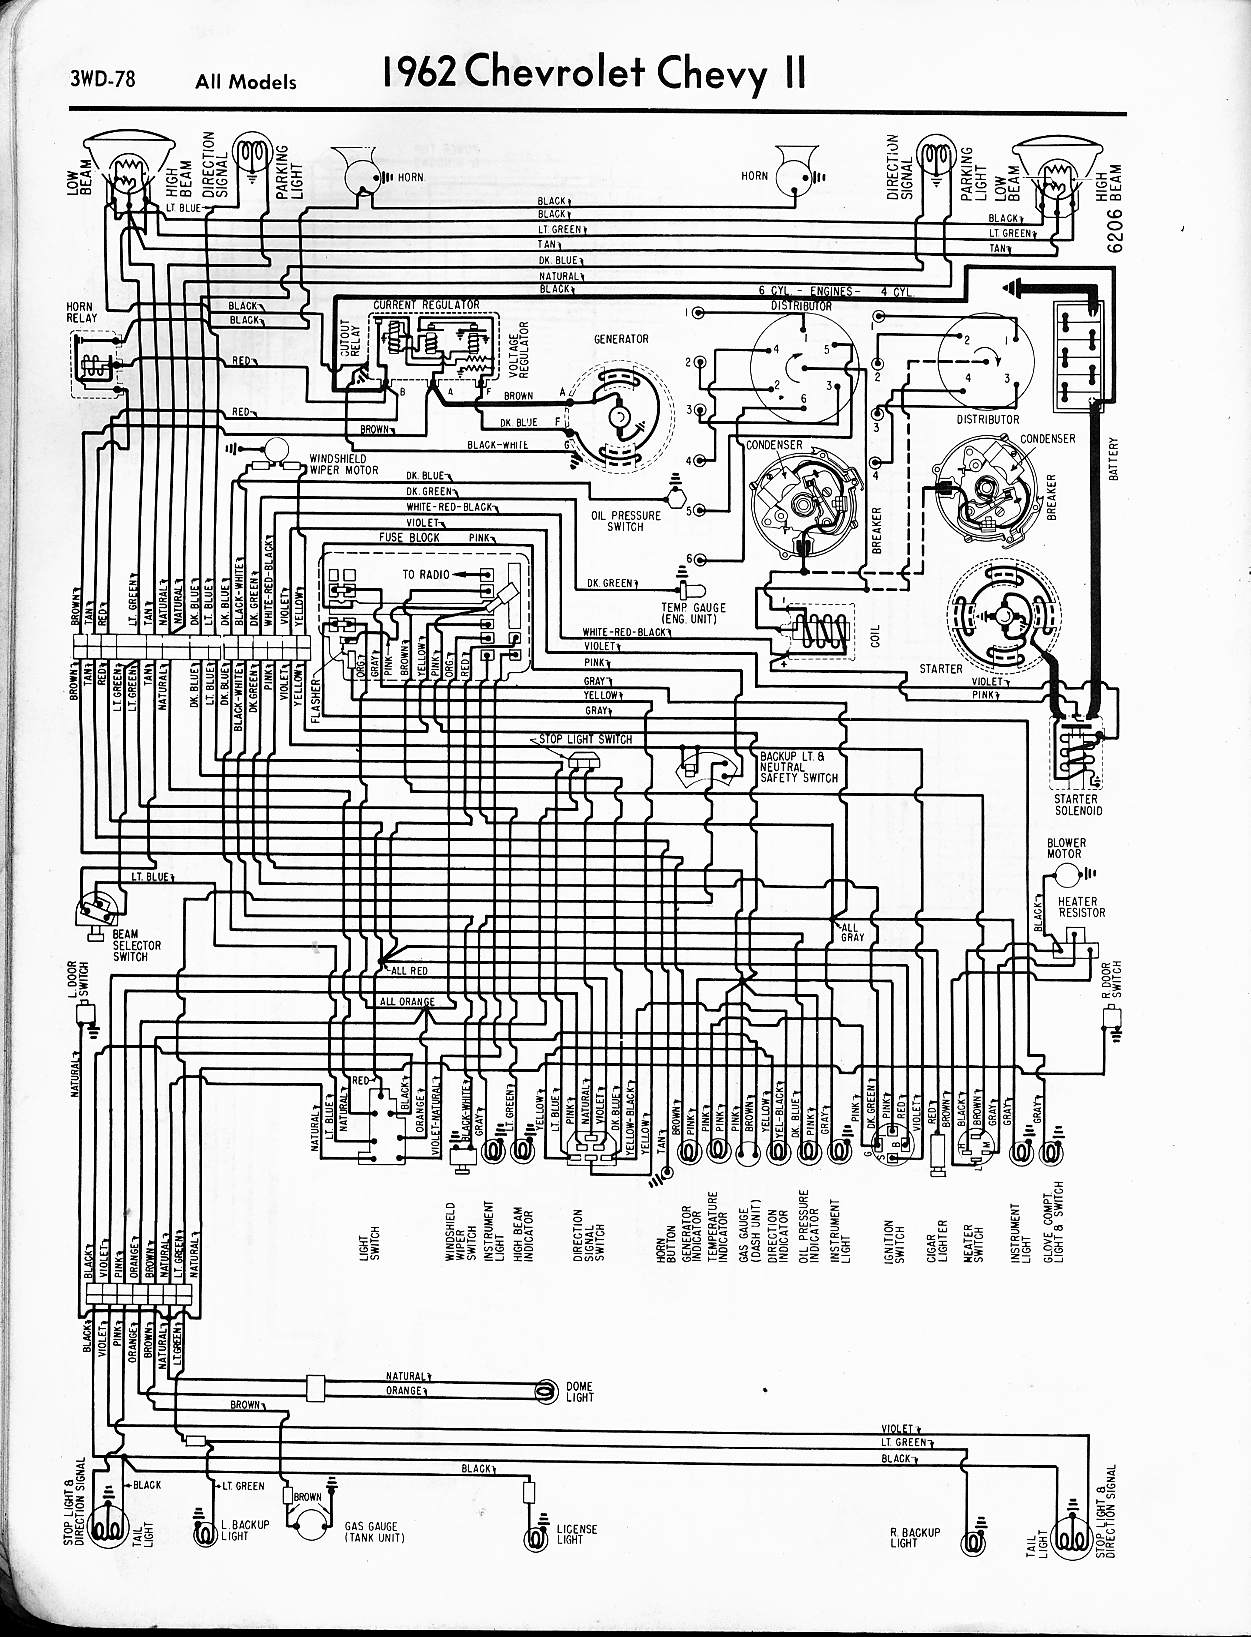 Amazing 1976 Nova Wiring Diagram Wiring Diagram Tutorial Wiring 101 Capemaxxcnl